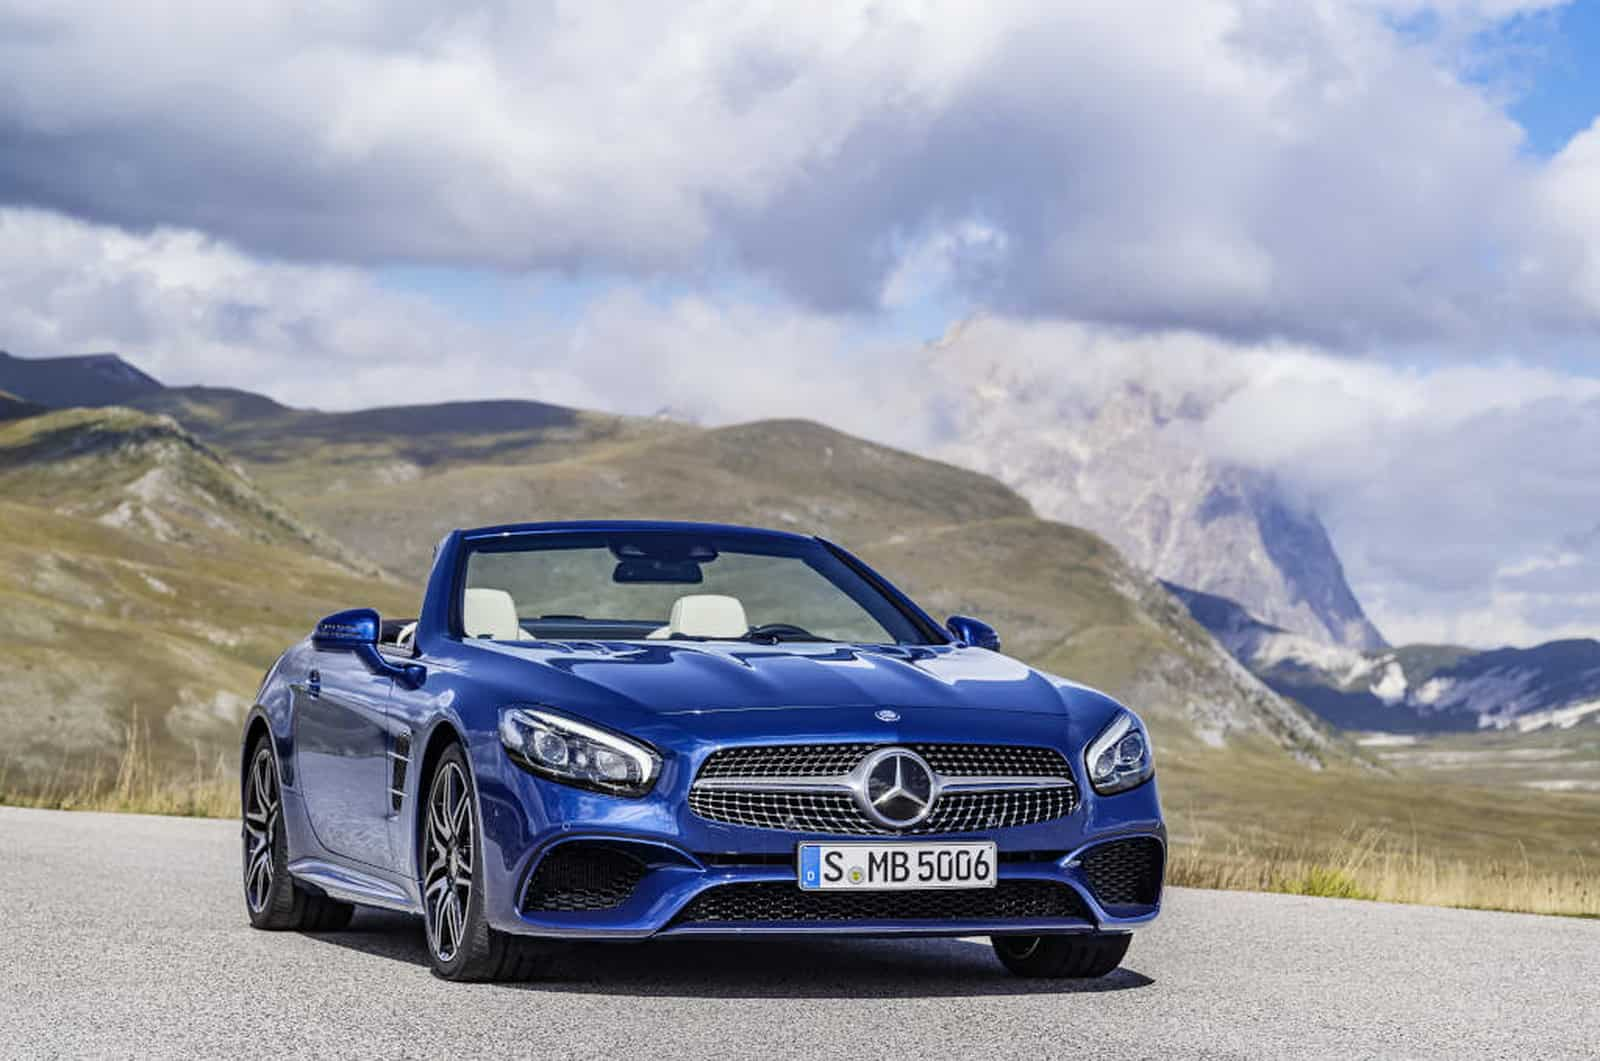 Mercedes-Benz SL 500. Brillantblau mit AMG Line. Mercedes-Benz SL 500. Brilliant blue with AMG Line.